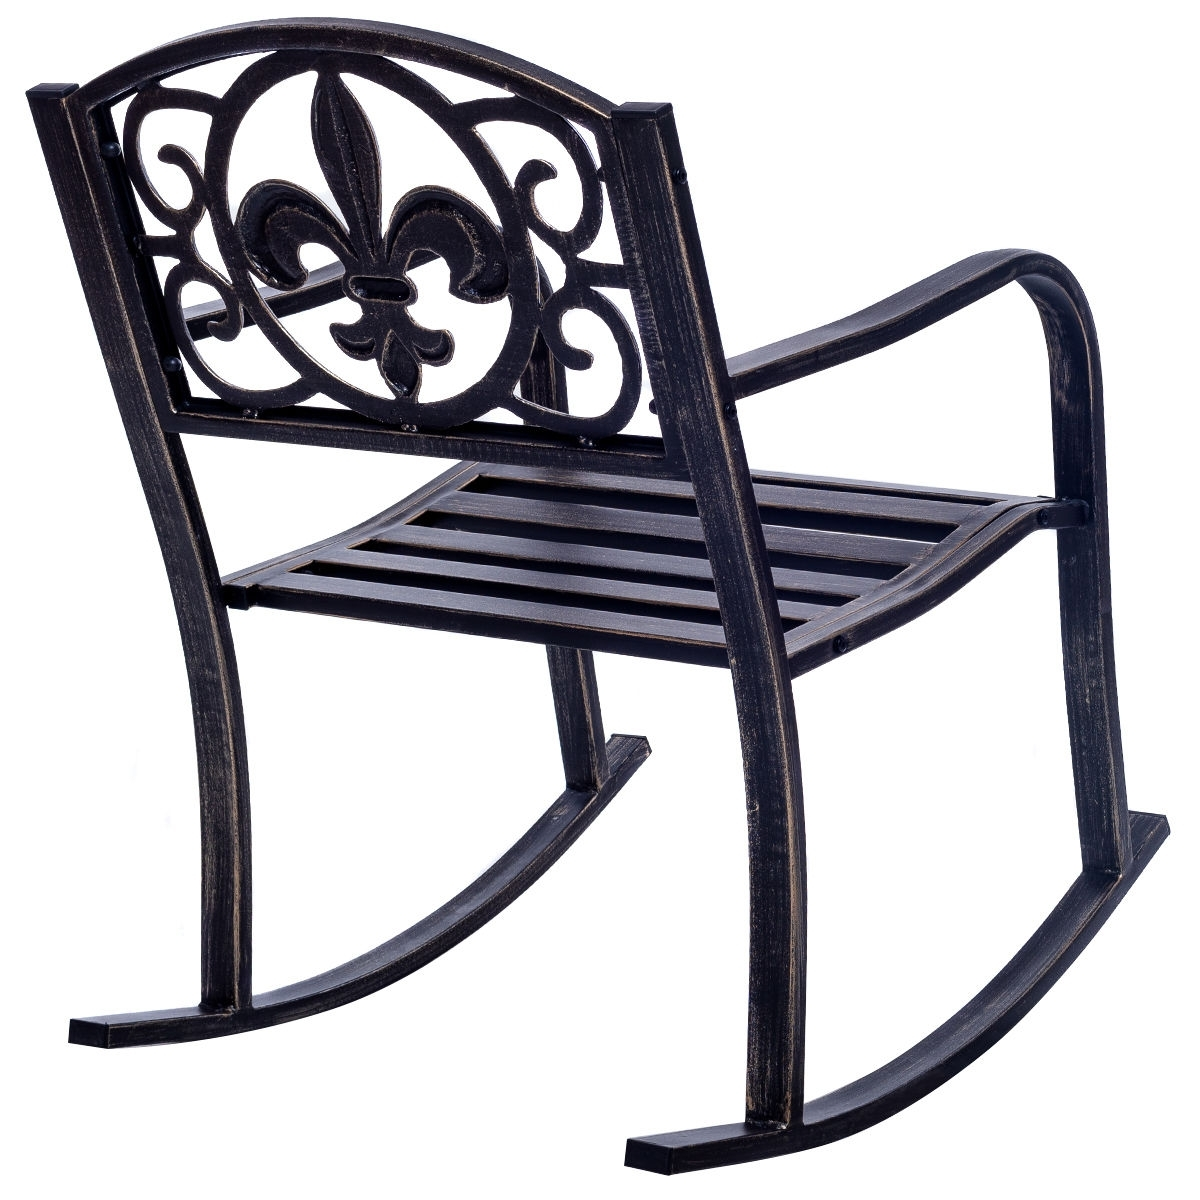 Costway: Costway Patio Metal Rocking Chair Porch Seat Deck Outdoor With Latest Patio Metal Rocking Chairs (View 5 of 15)